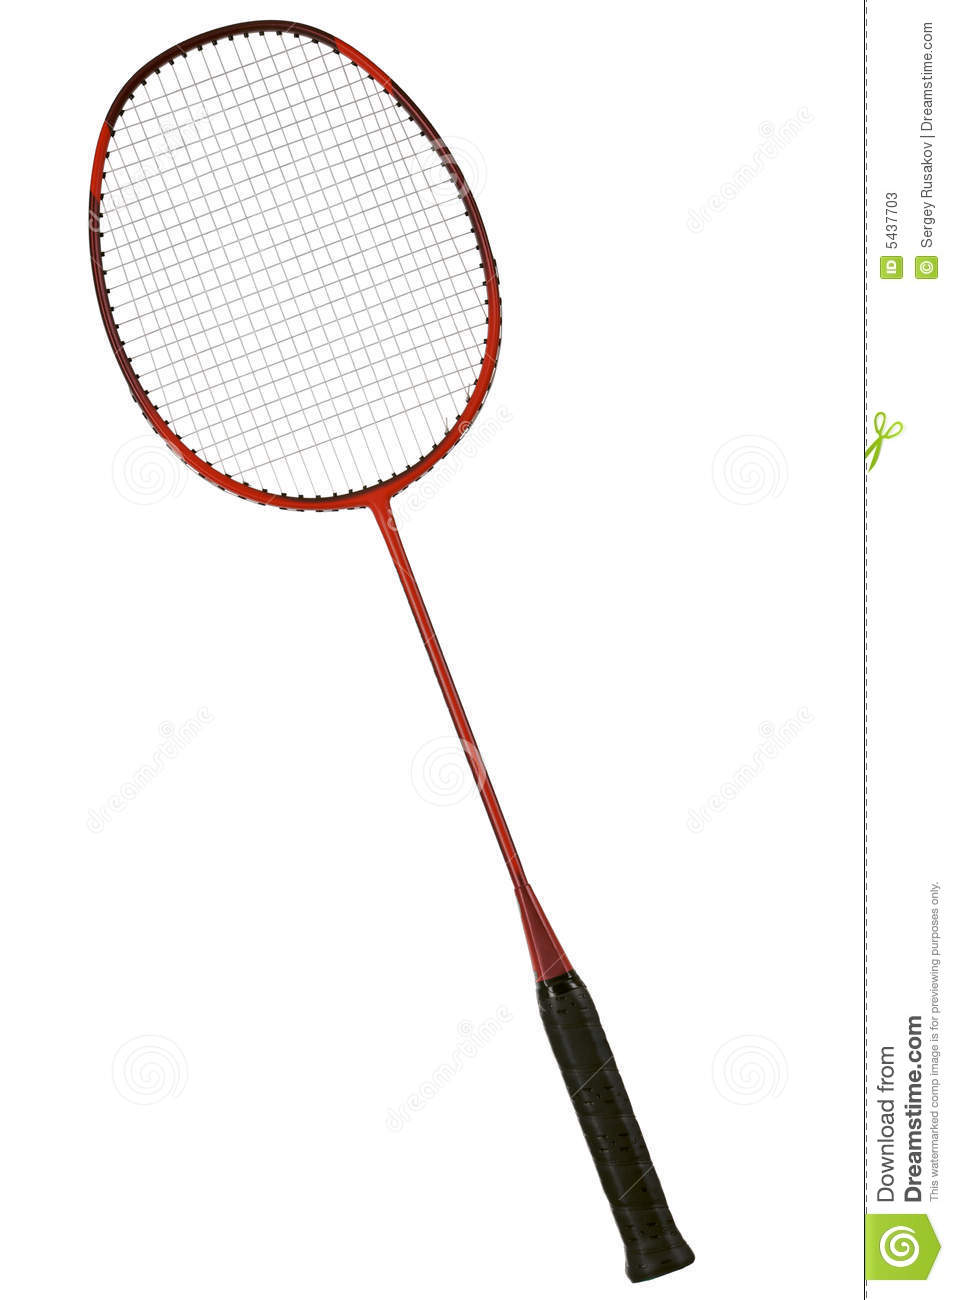 badminton racket stock photos image 5437703 field hockey goalie clipart hockey goalie clip art free images